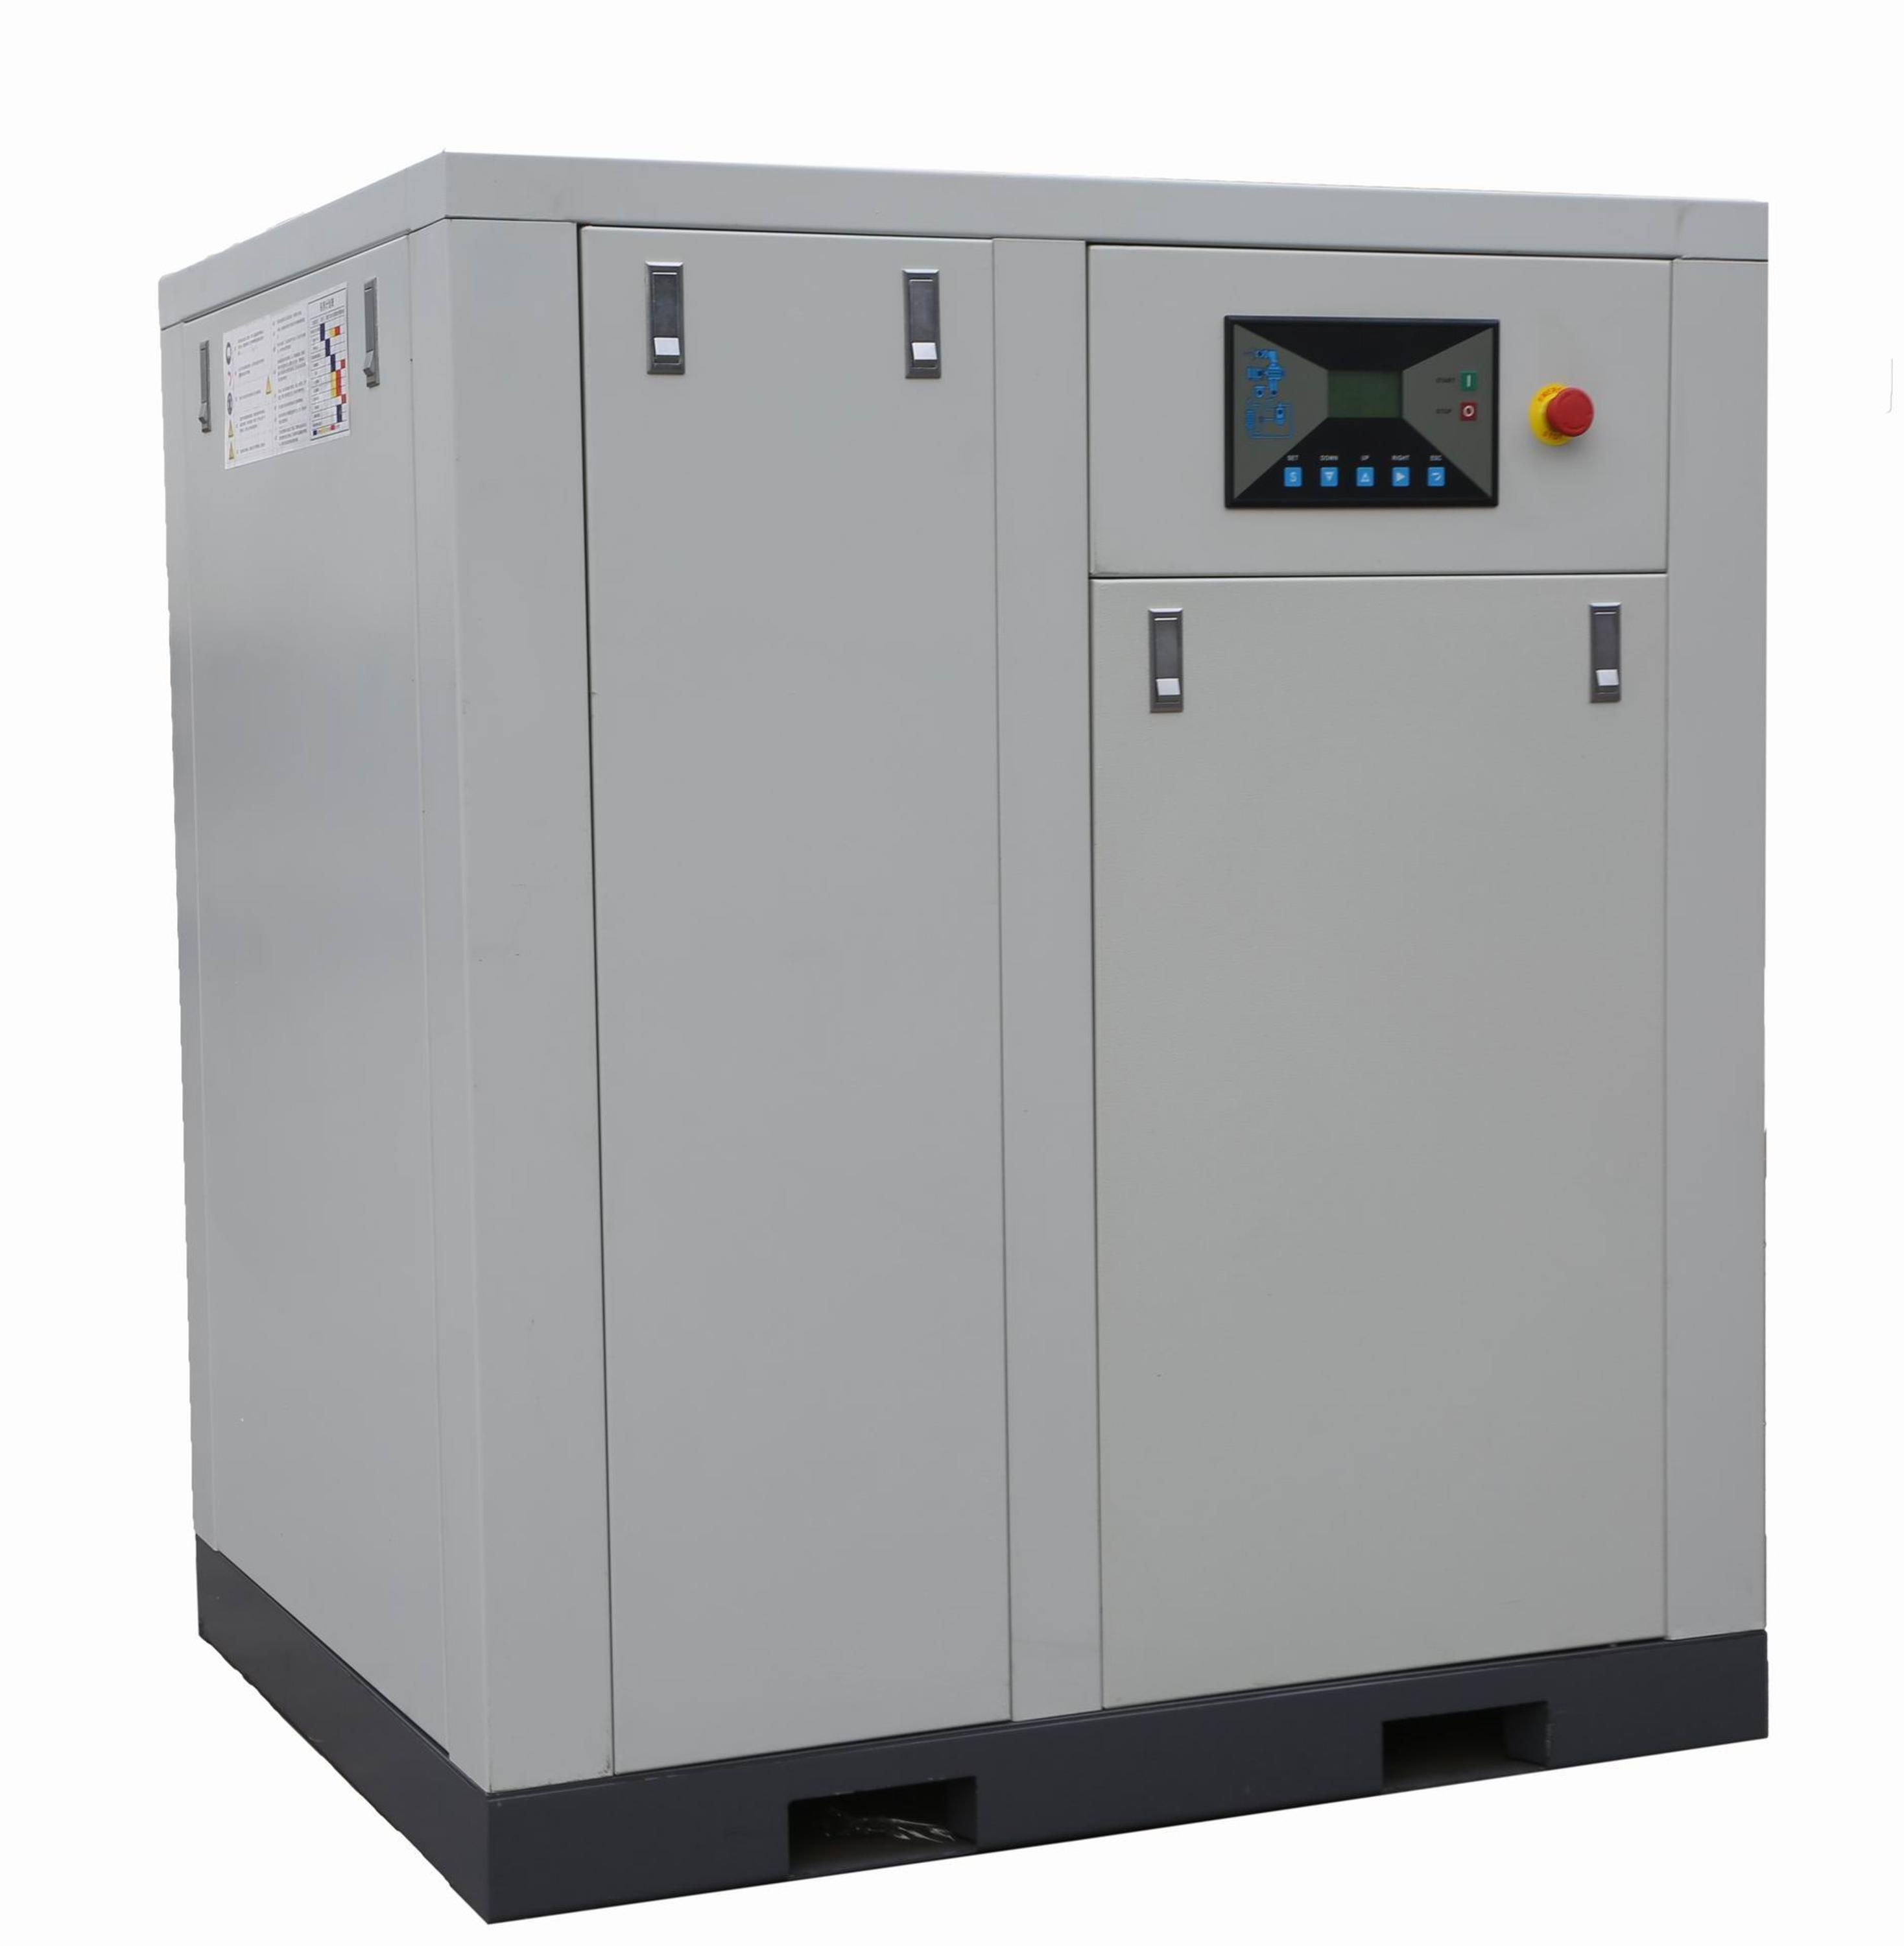 Hot sale oil lubricated 45kw 60hp gas compressor XLAM60A-J14 with high efficient air end